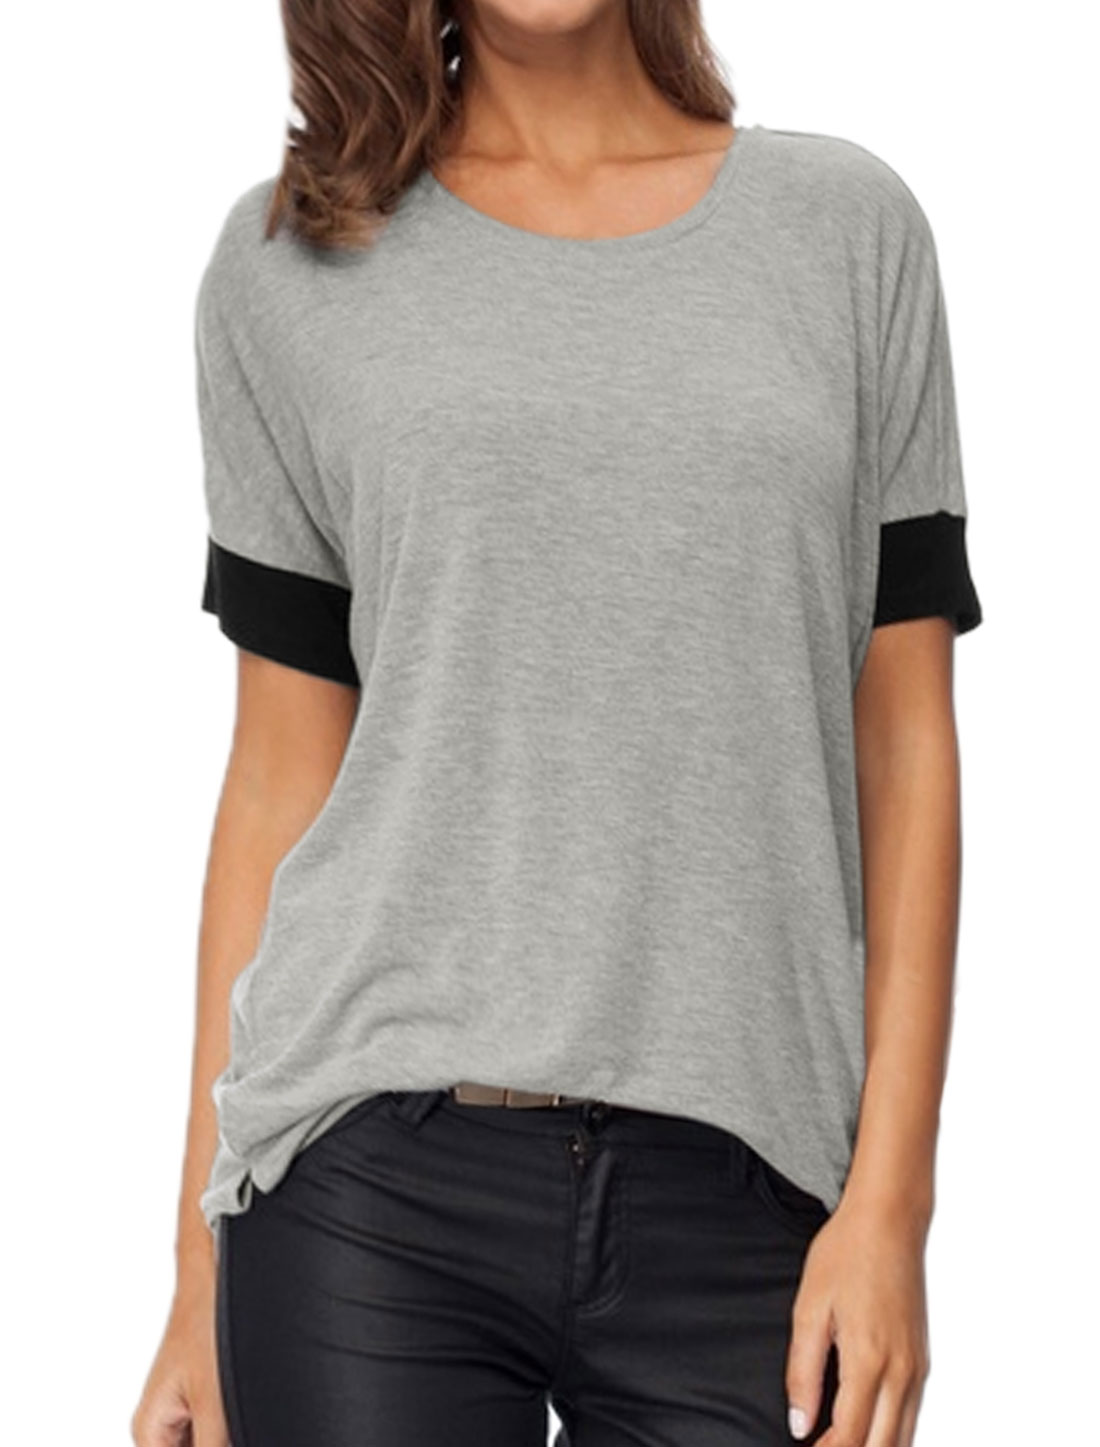 Lady Round Neck Short Sleeves Contrast Color Tunic T-Shirt Gray XS